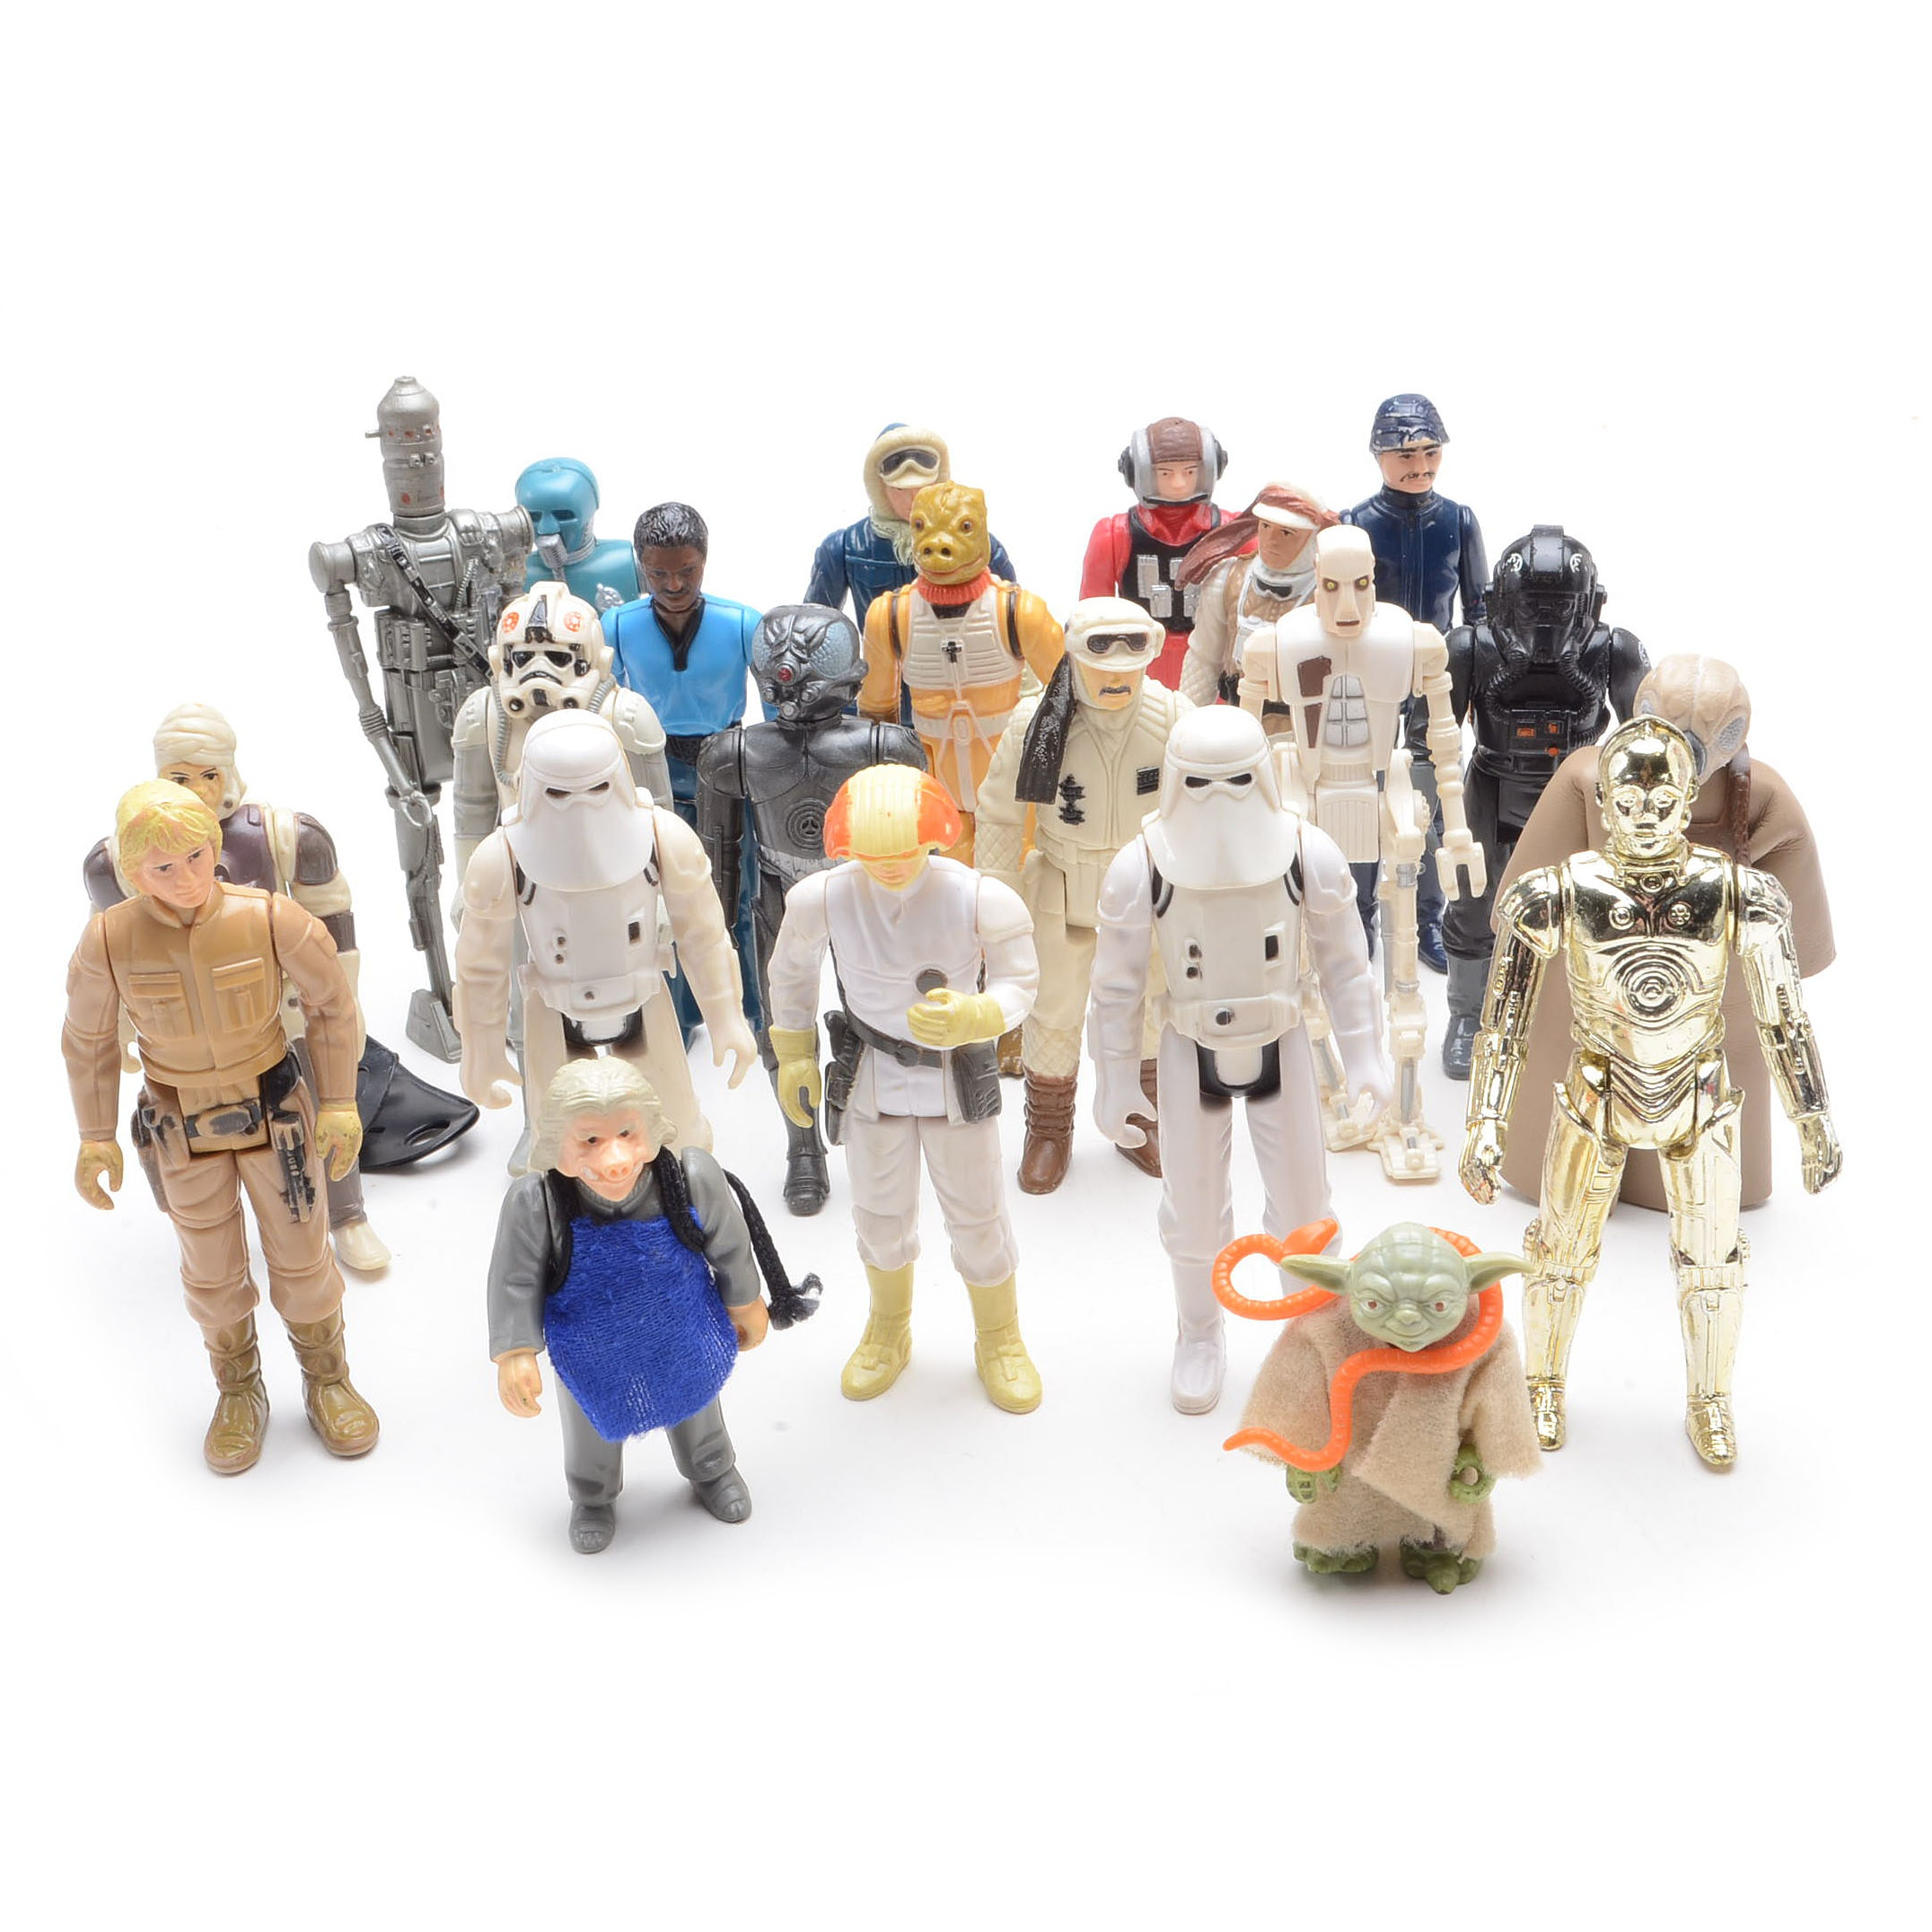 Collection of Vintage Empire Strikes Back Figures